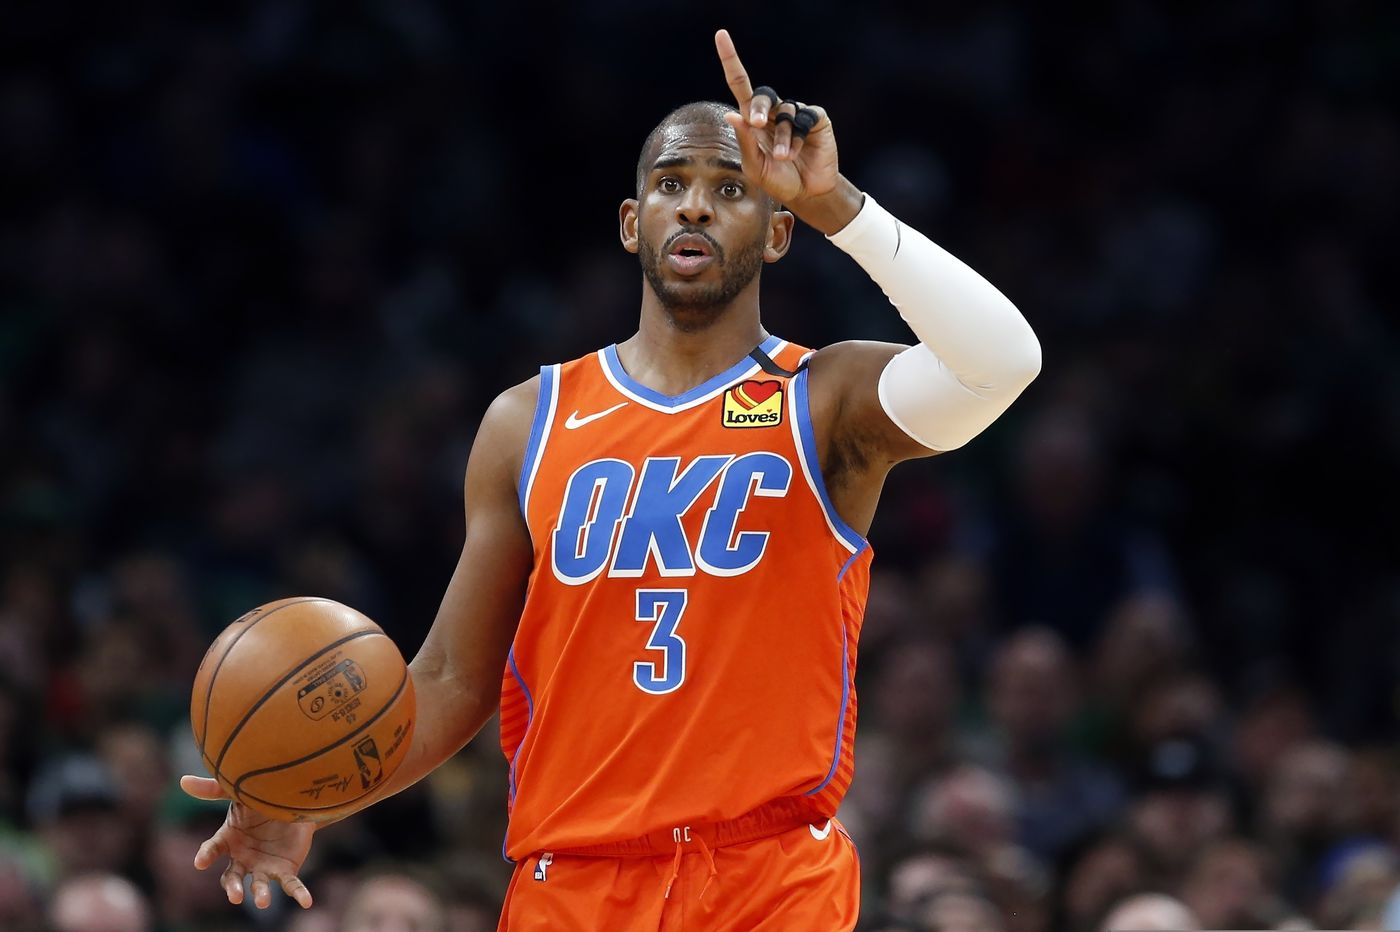 Chris Paul trade to Suns sparks action-packed NBA week, former Giants CB DeAndre Baker's charges dropped, and more sports news